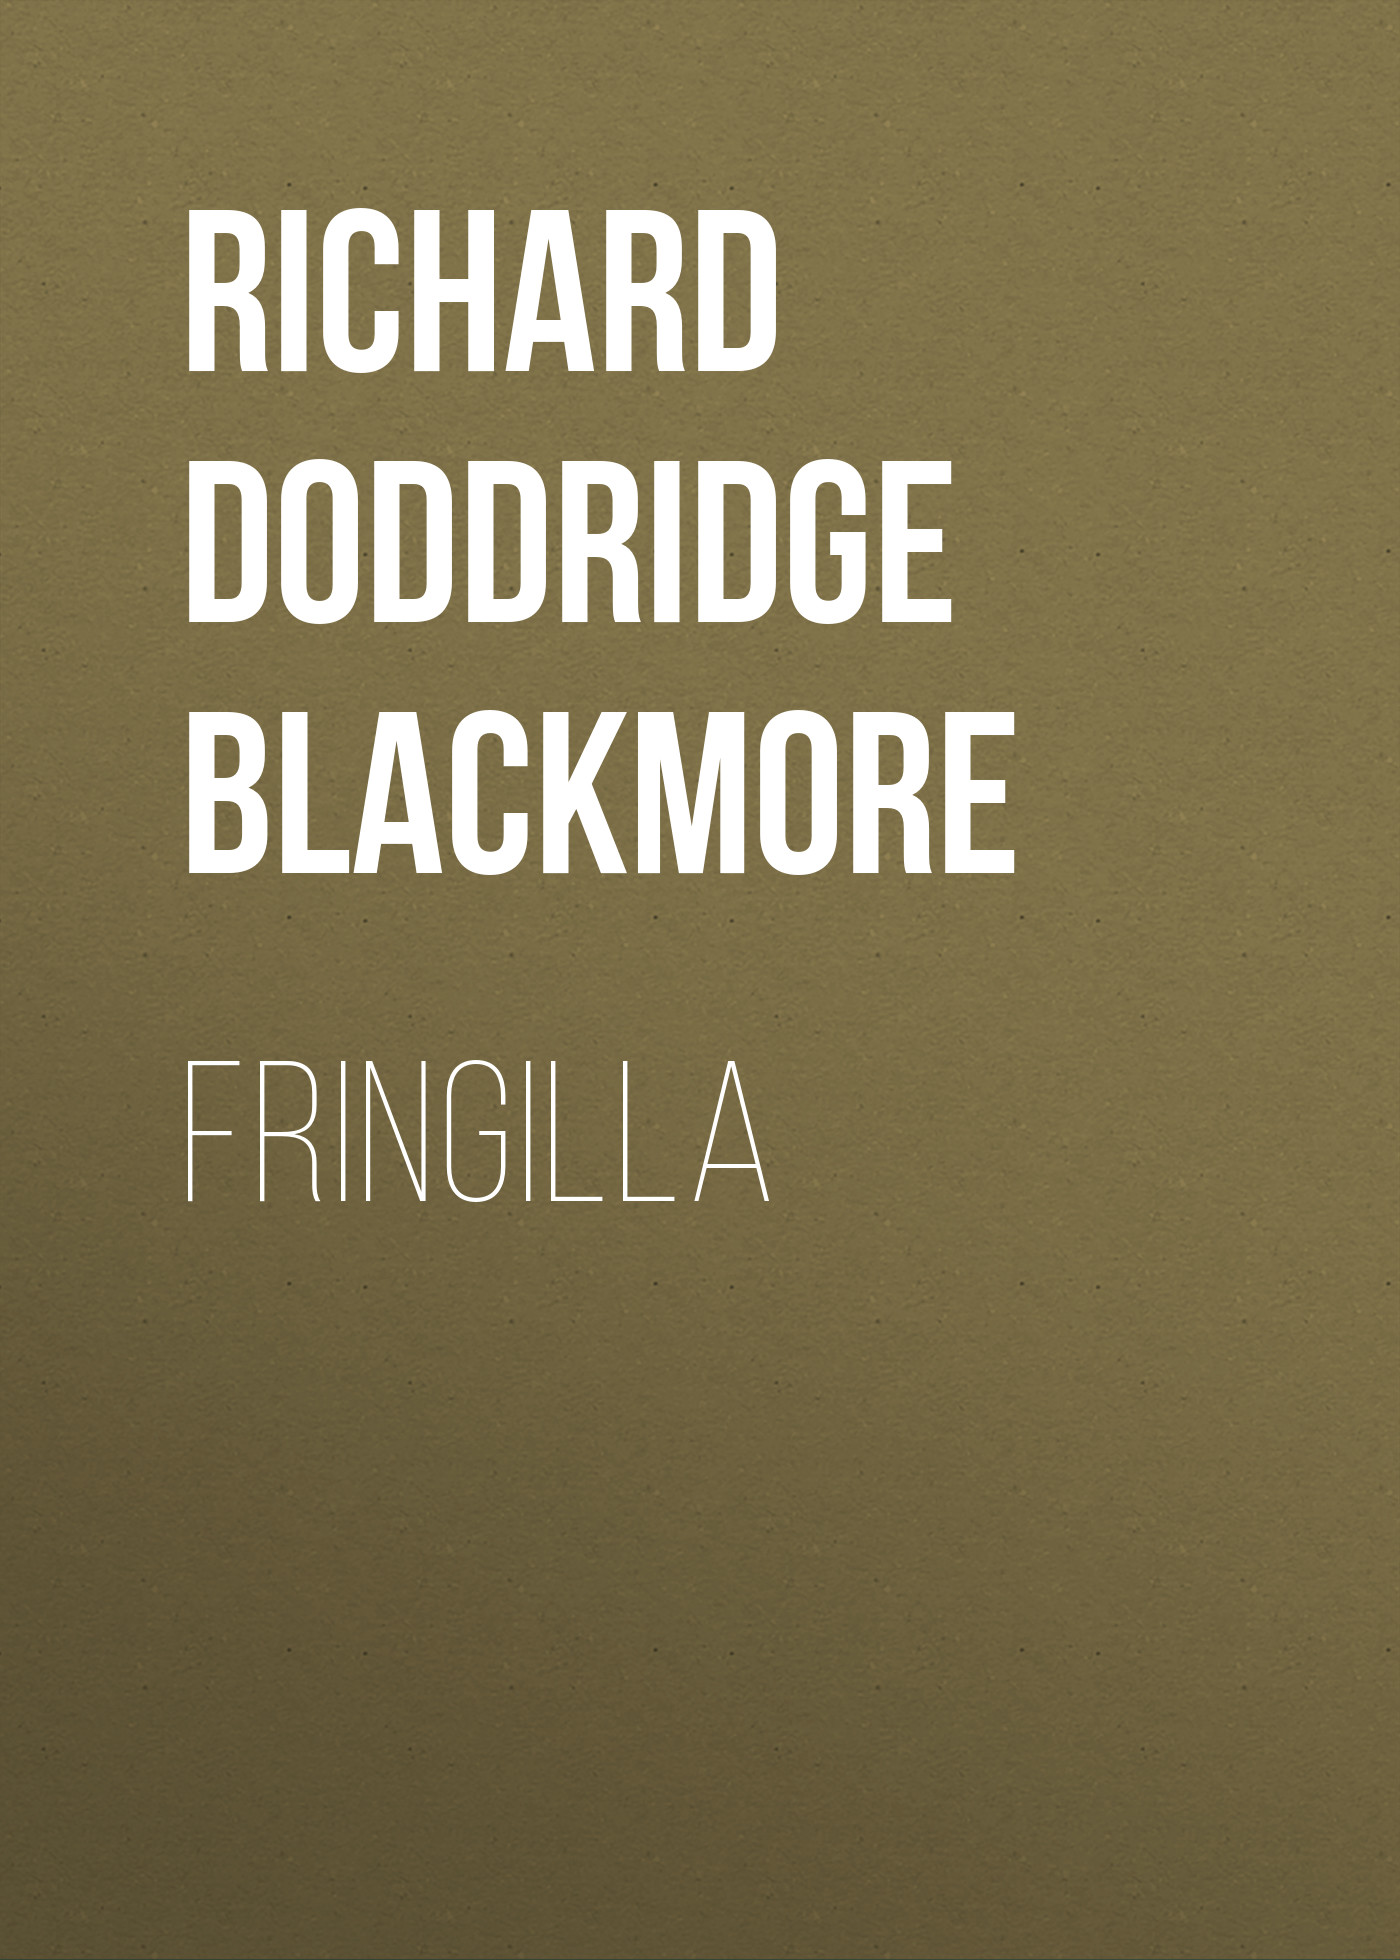 Richard Doddridge Blackmore Fringilla blackmore richard doddridge clara vaughan volume 1 of 3